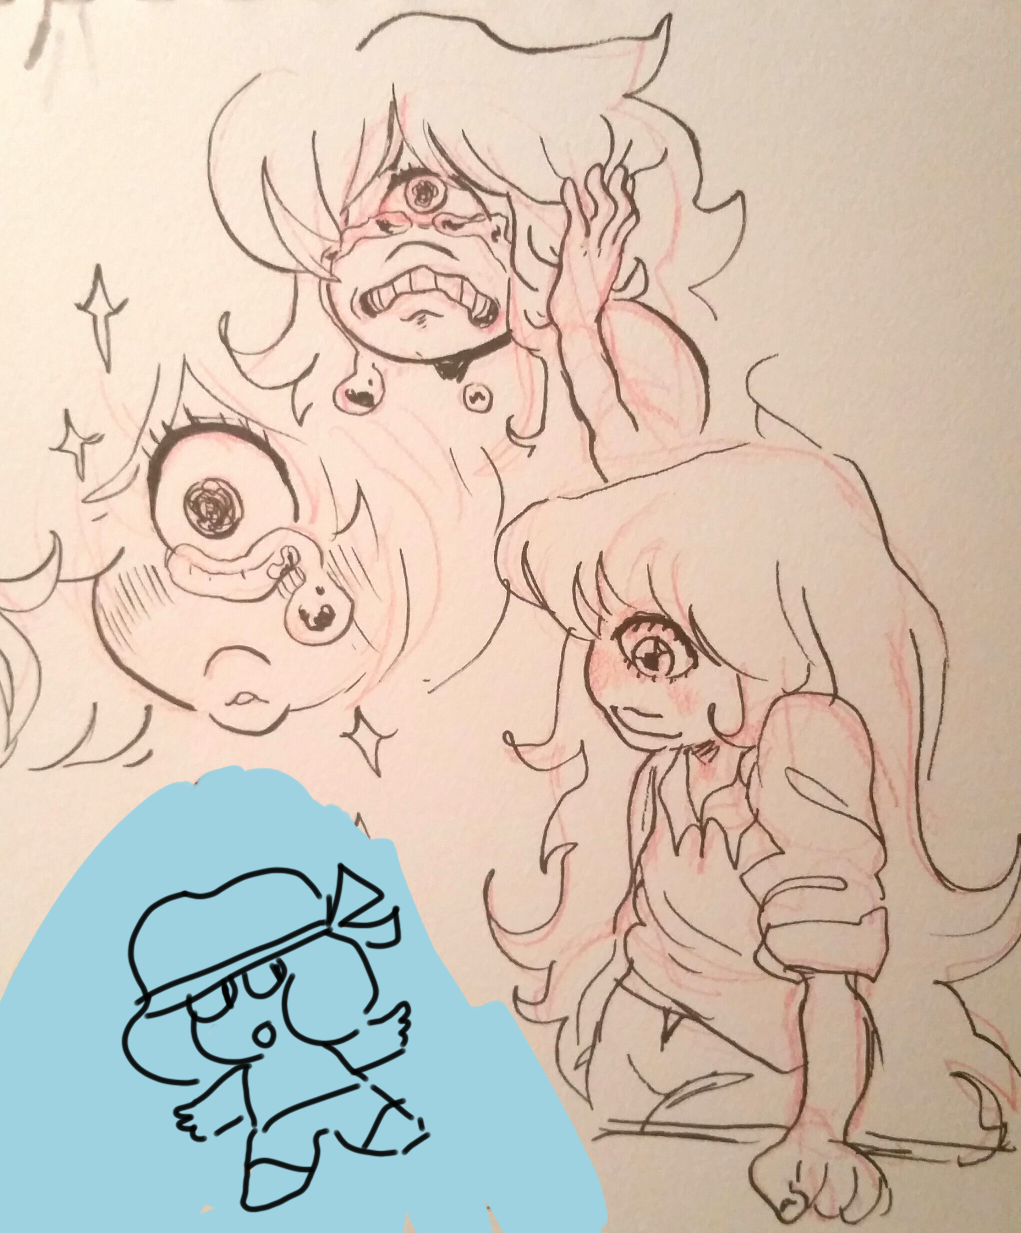 Sapphire's emotions are rare and huge